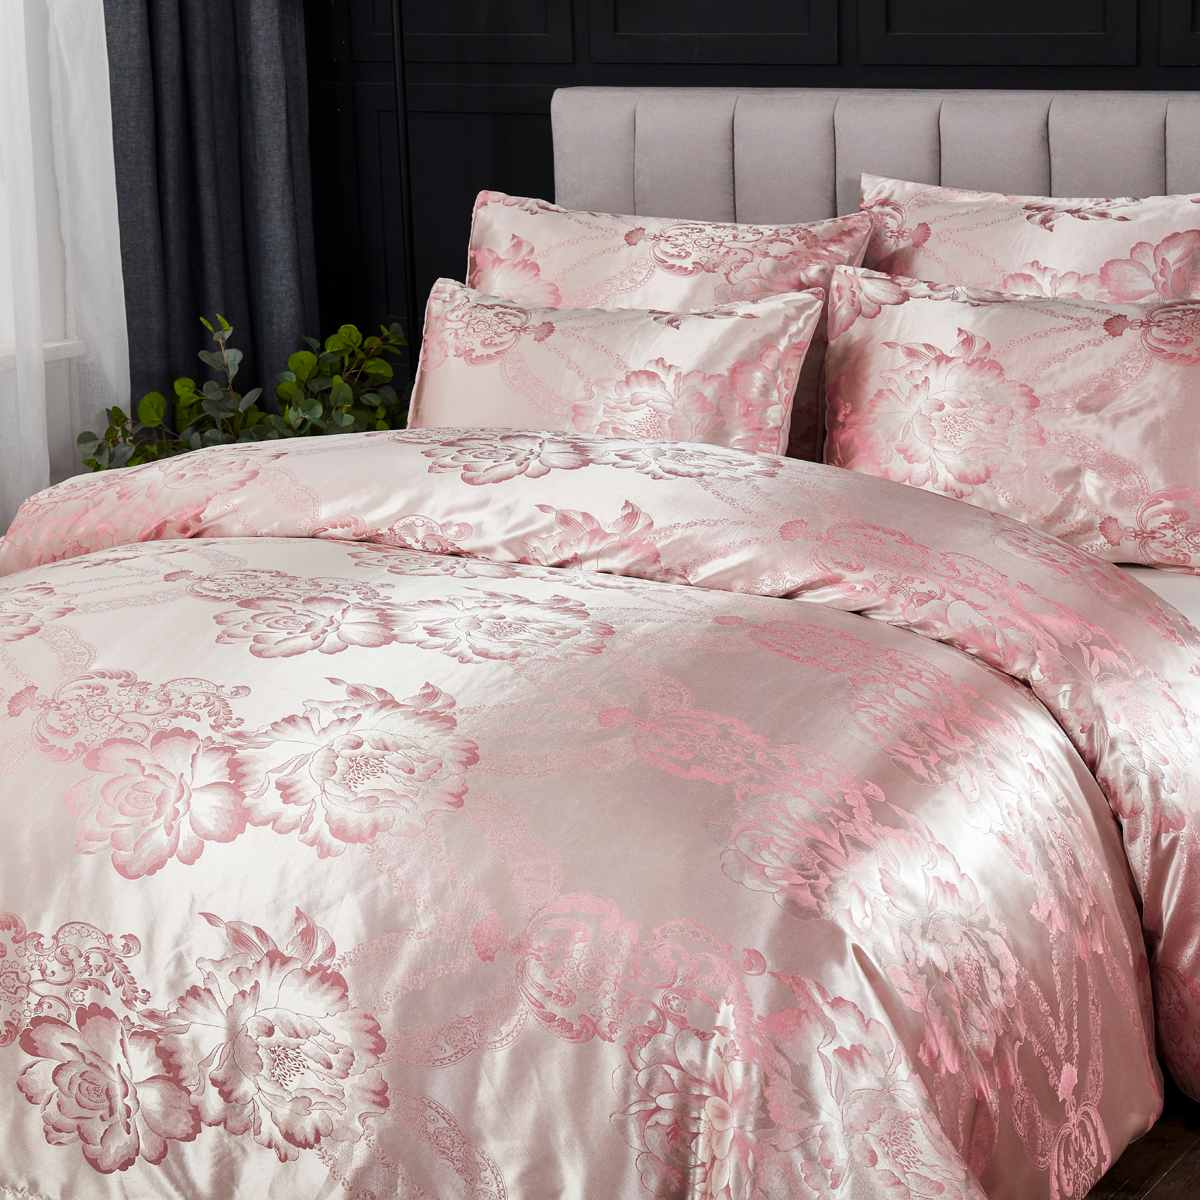 Best Price 9adc53 2 3pcs Pink Floral Satin Bedding Set Home Bedroom Soft Duvet Cover Pillowcases Set Full Queen King Size Luxury Jacquard Bed Sets Cicig Co